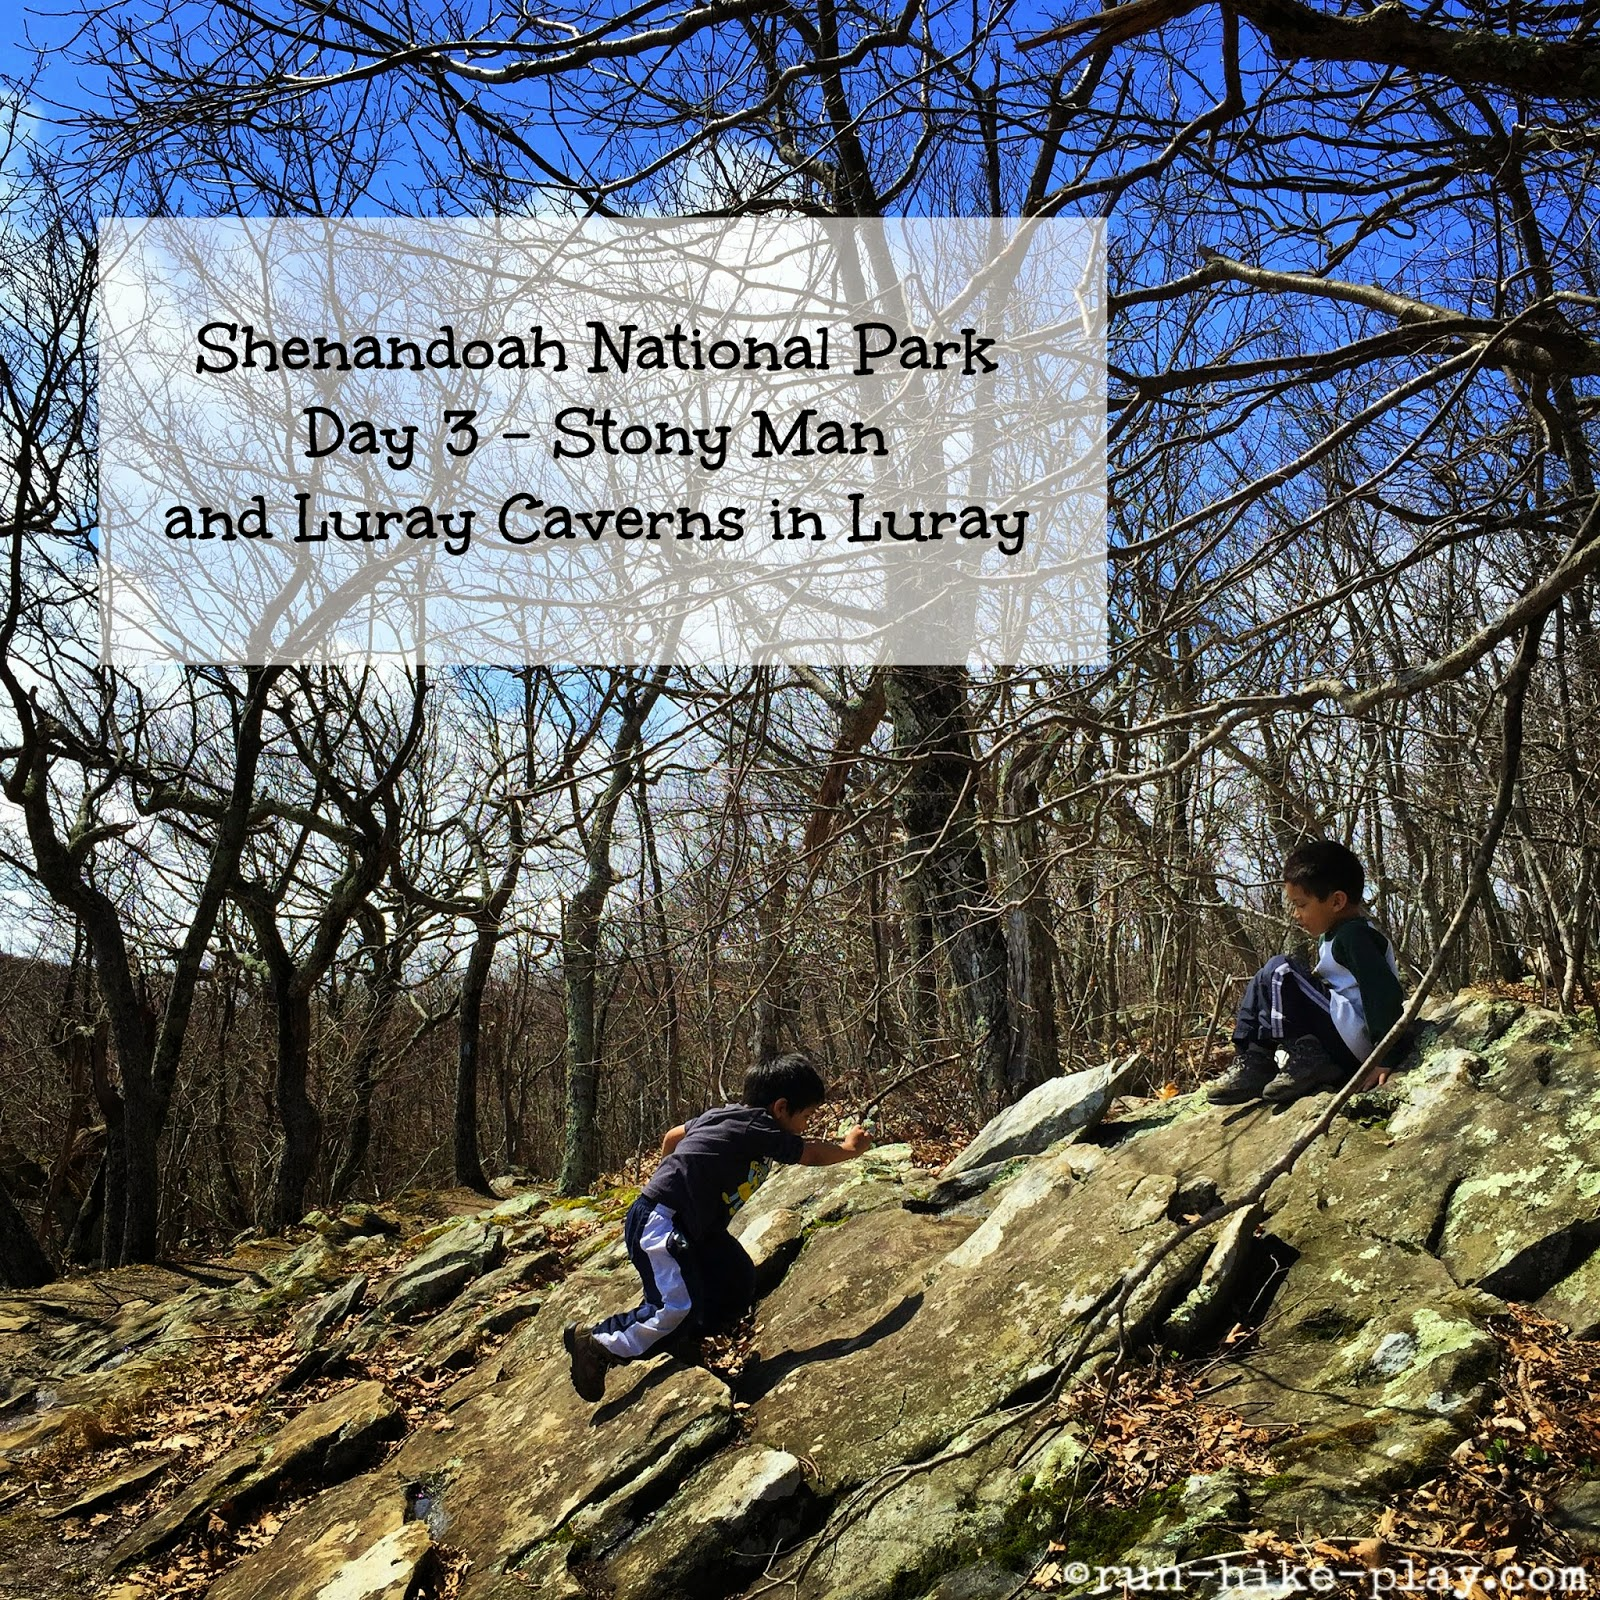 Shenandoah National Park: Stony Man & Luray Caverns